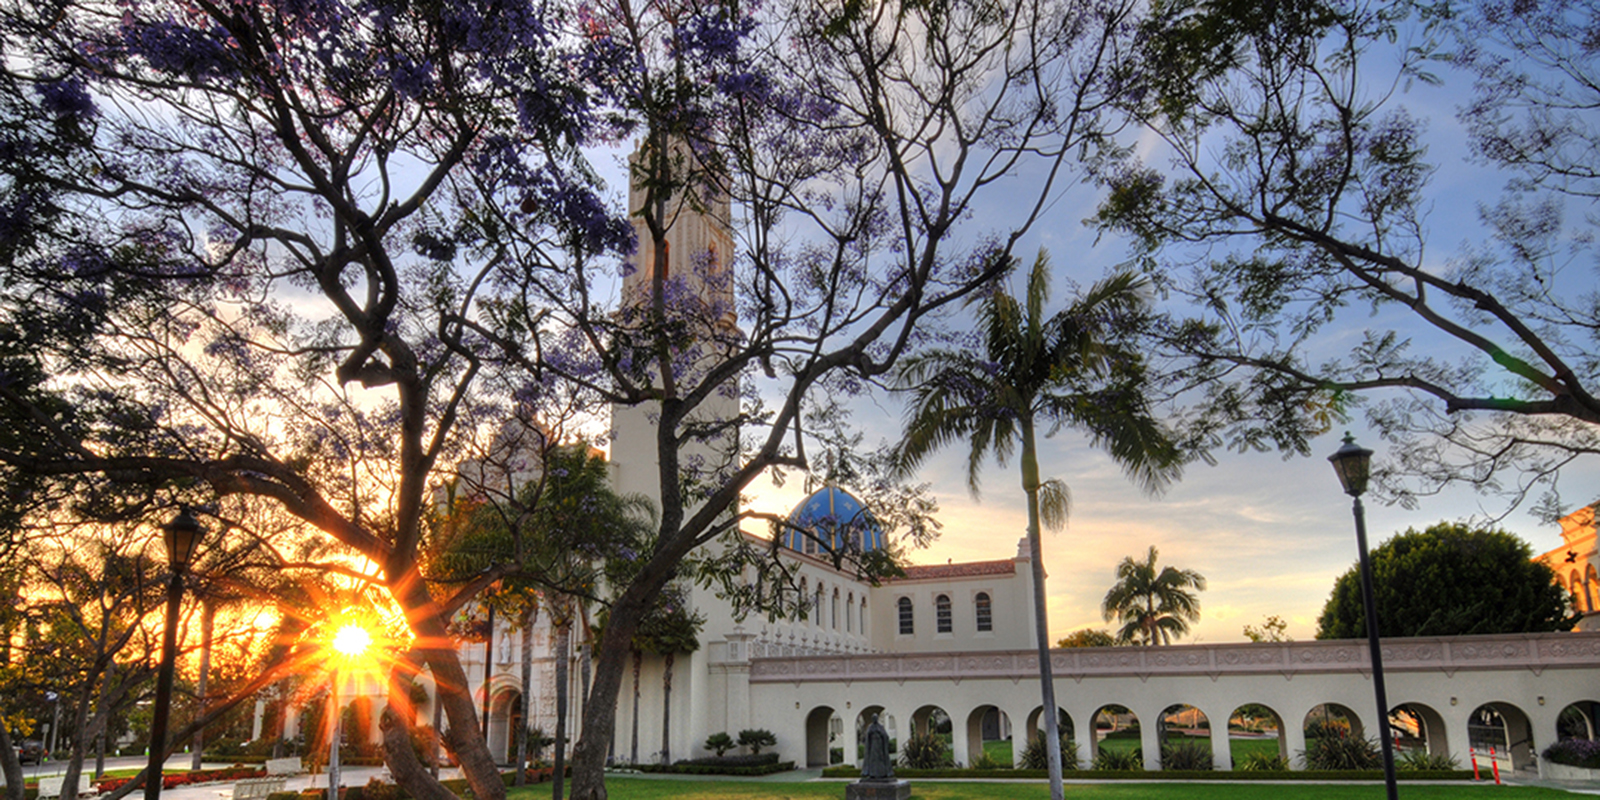 Beauty shot of USD campus